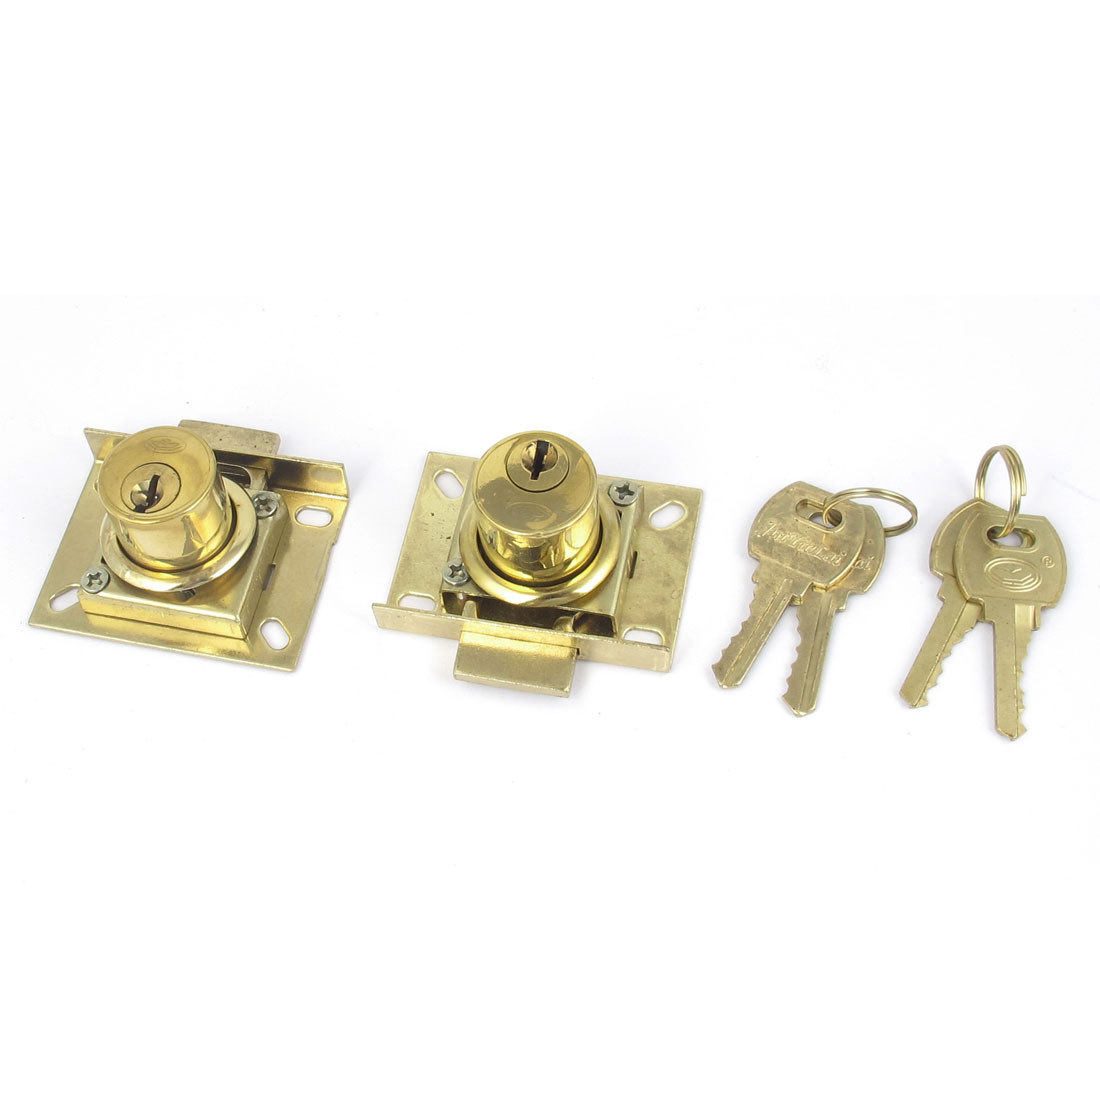 Cabinet Cupboard Mailbox Drawer Door Security Lock Gold Tone 2pcs w 4 Keys